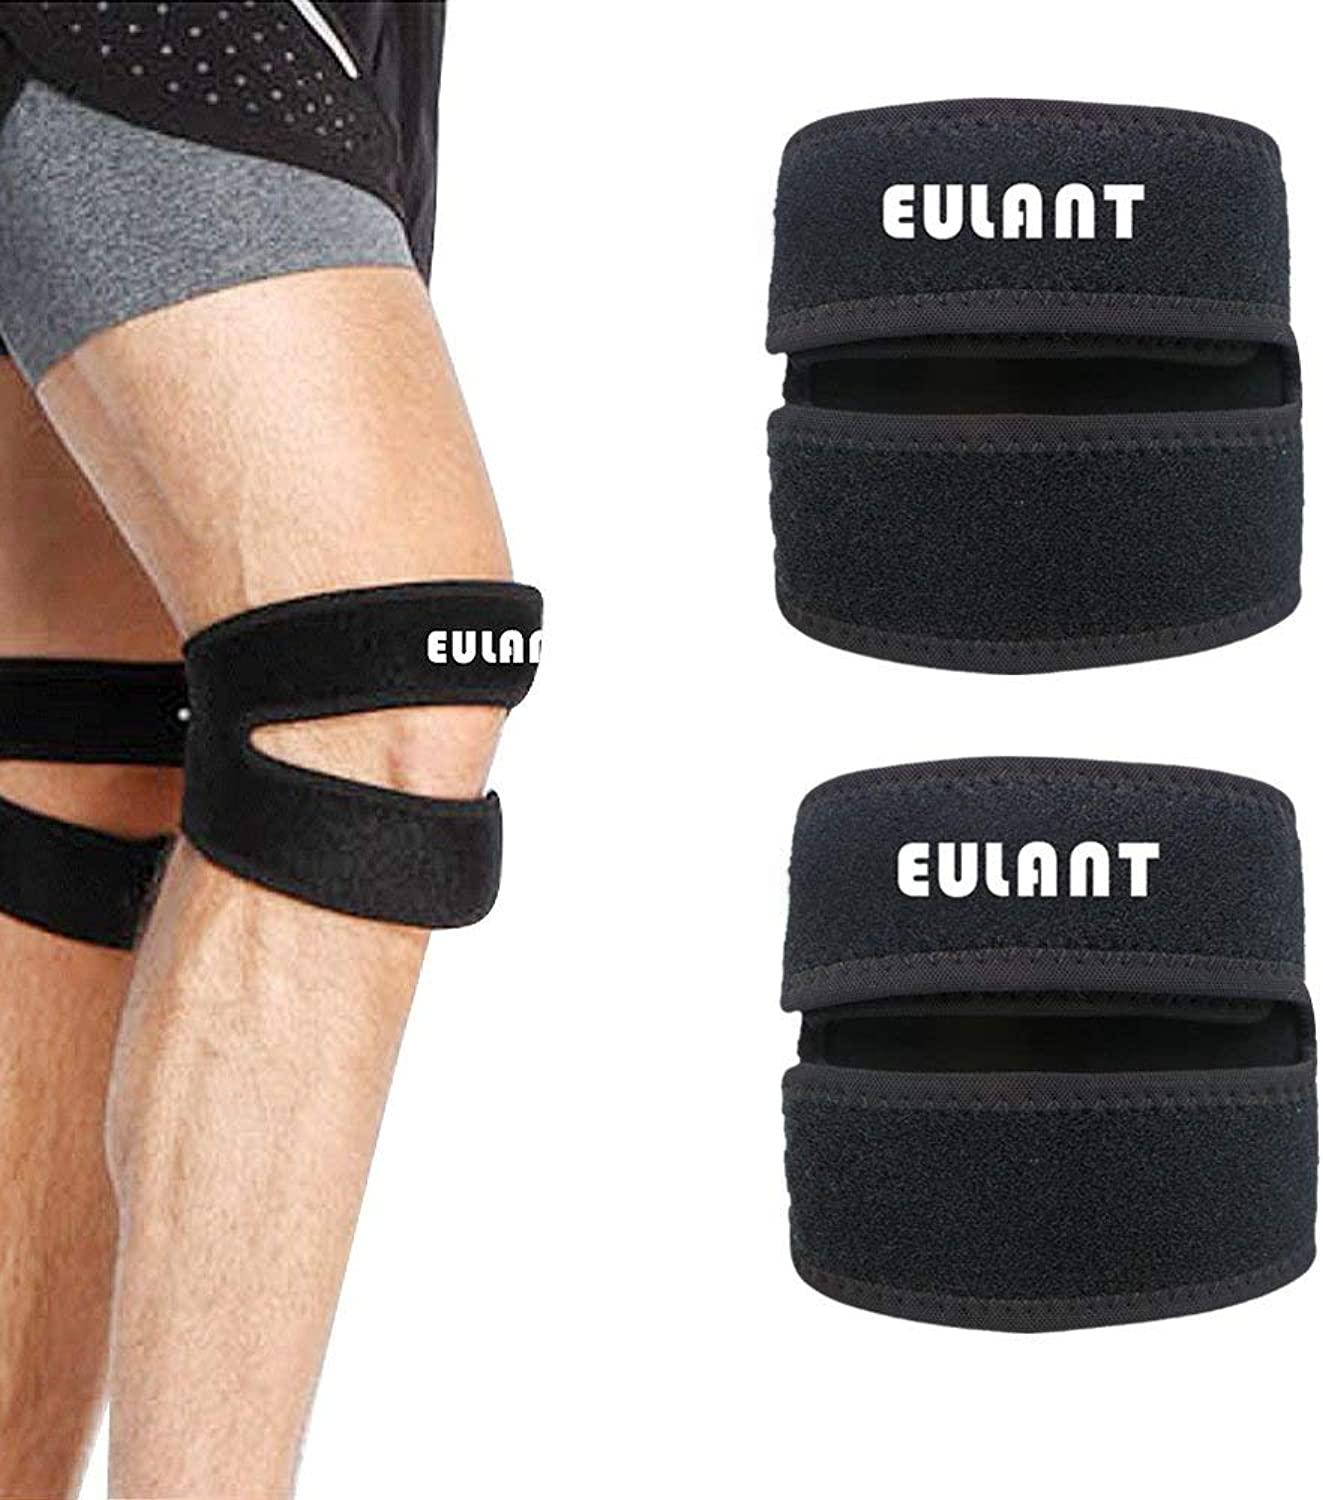 EULANT Dual Strap Knee Brace Providing Targeted Compression Knee Strap Tendonitis Support for Running, Jumper, Squats, Weight Lifting, Basketball, for Women and Men (1 Pair)